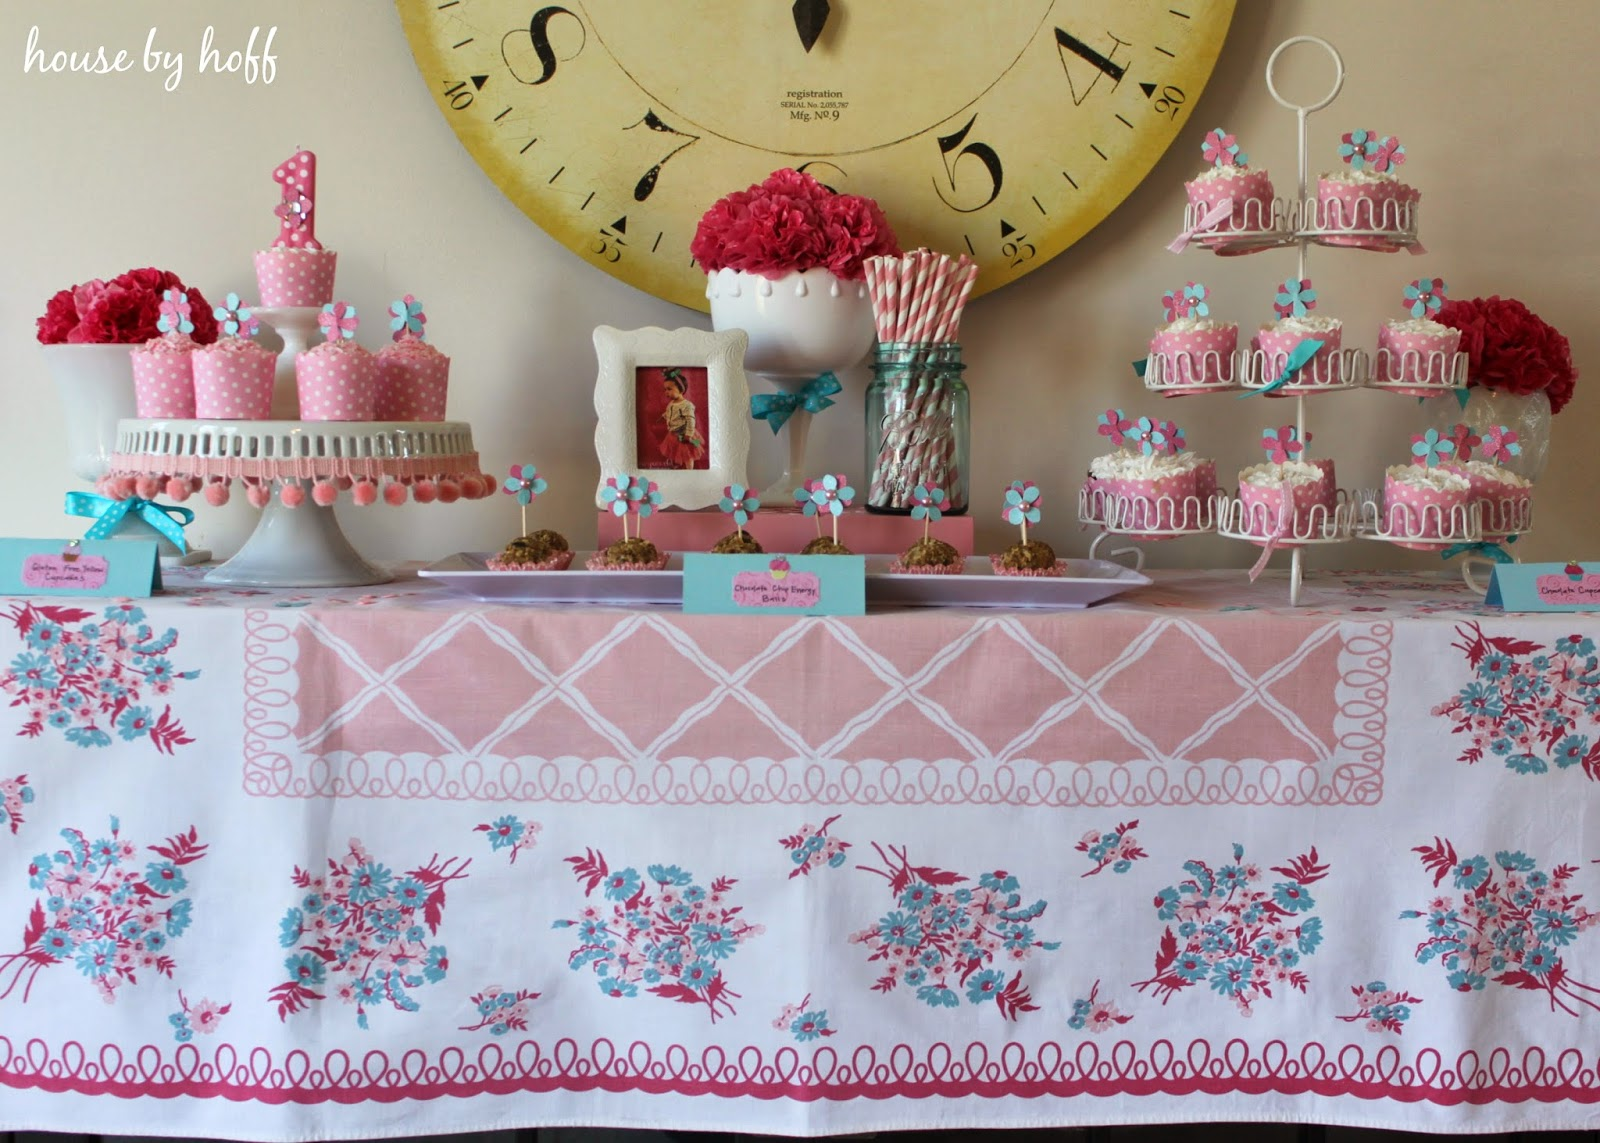 tips for photographing your child's birthday party via housebyhoff.com